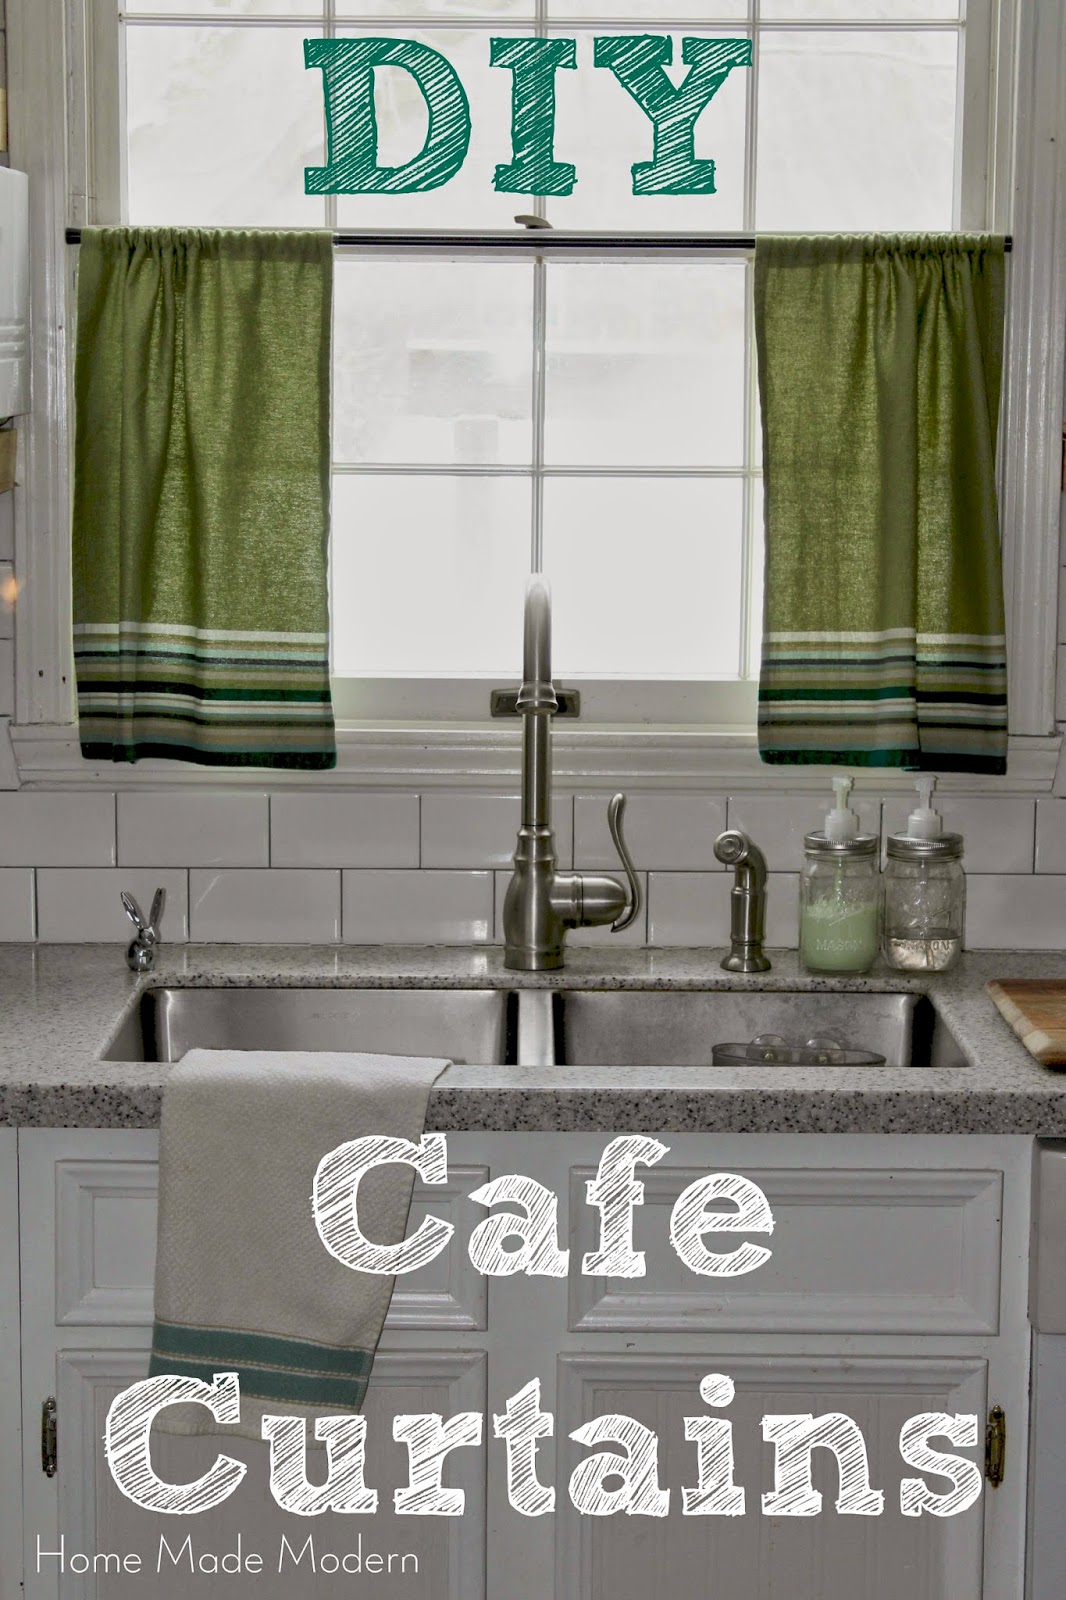 Home made modern cafe curtains from kitchen towels for Cafe curtains for kitchen ideas